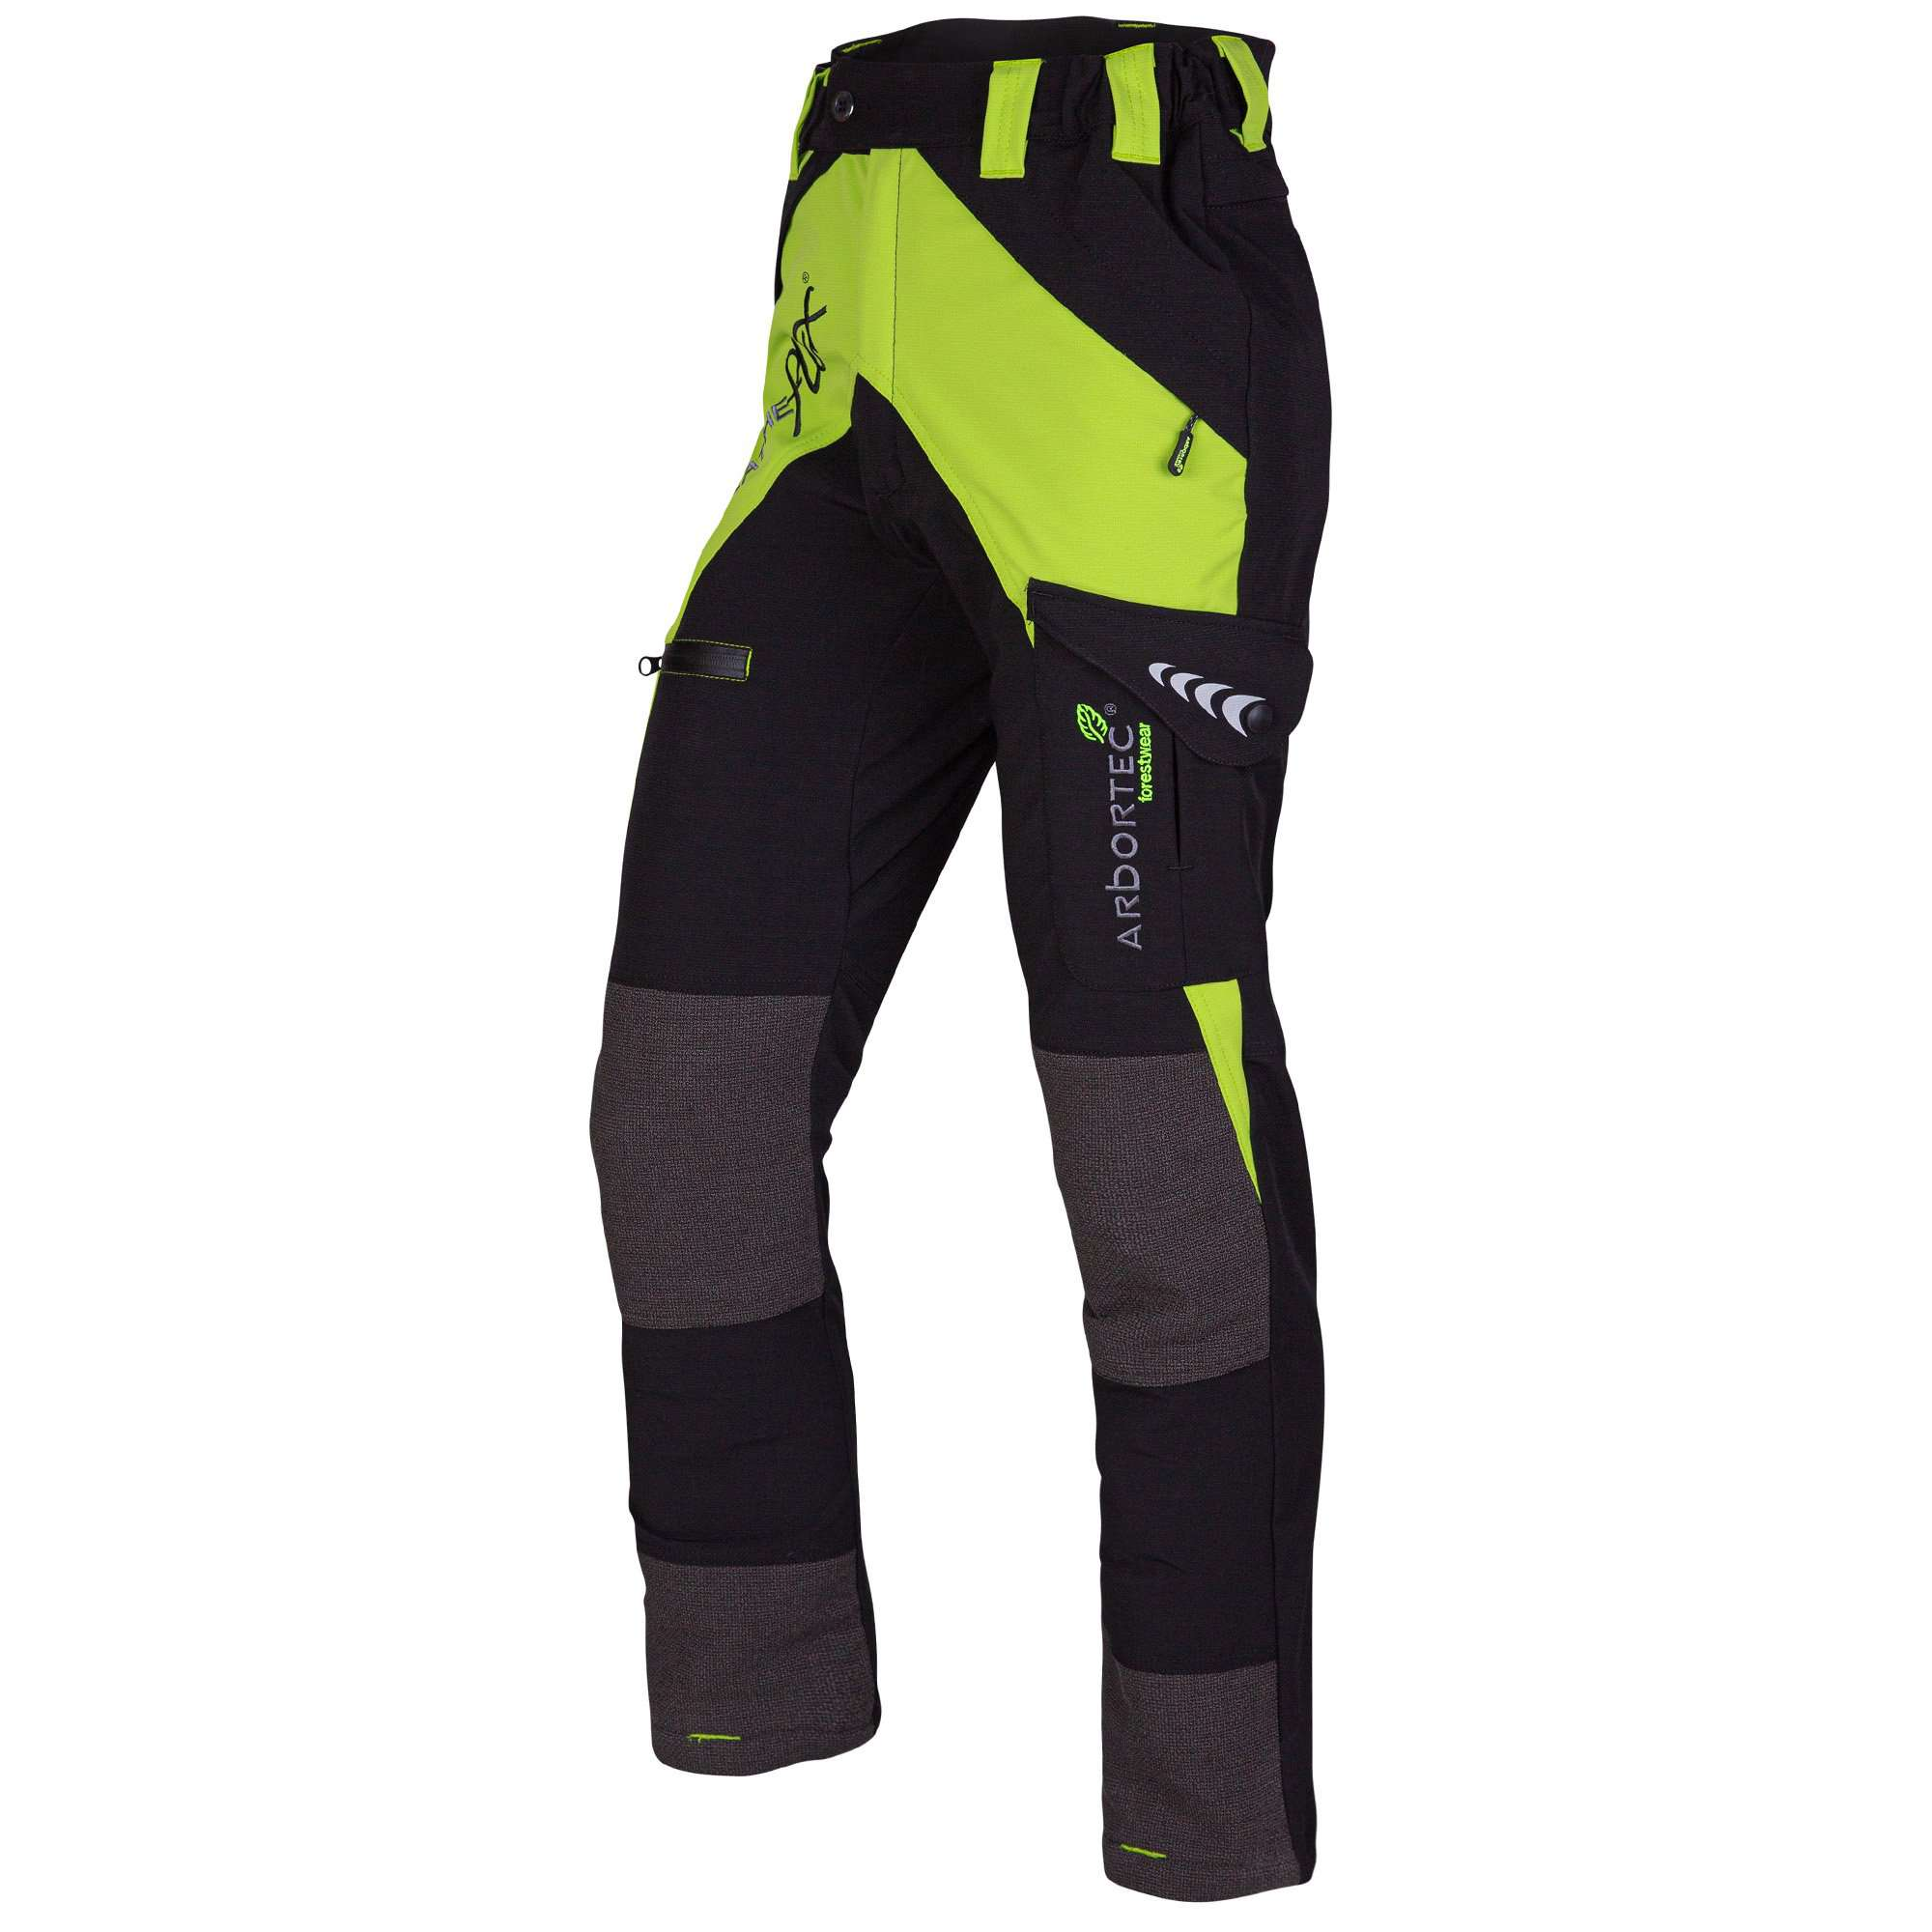 AT4110 Breatheflex Non-Protective Trousers - Lime